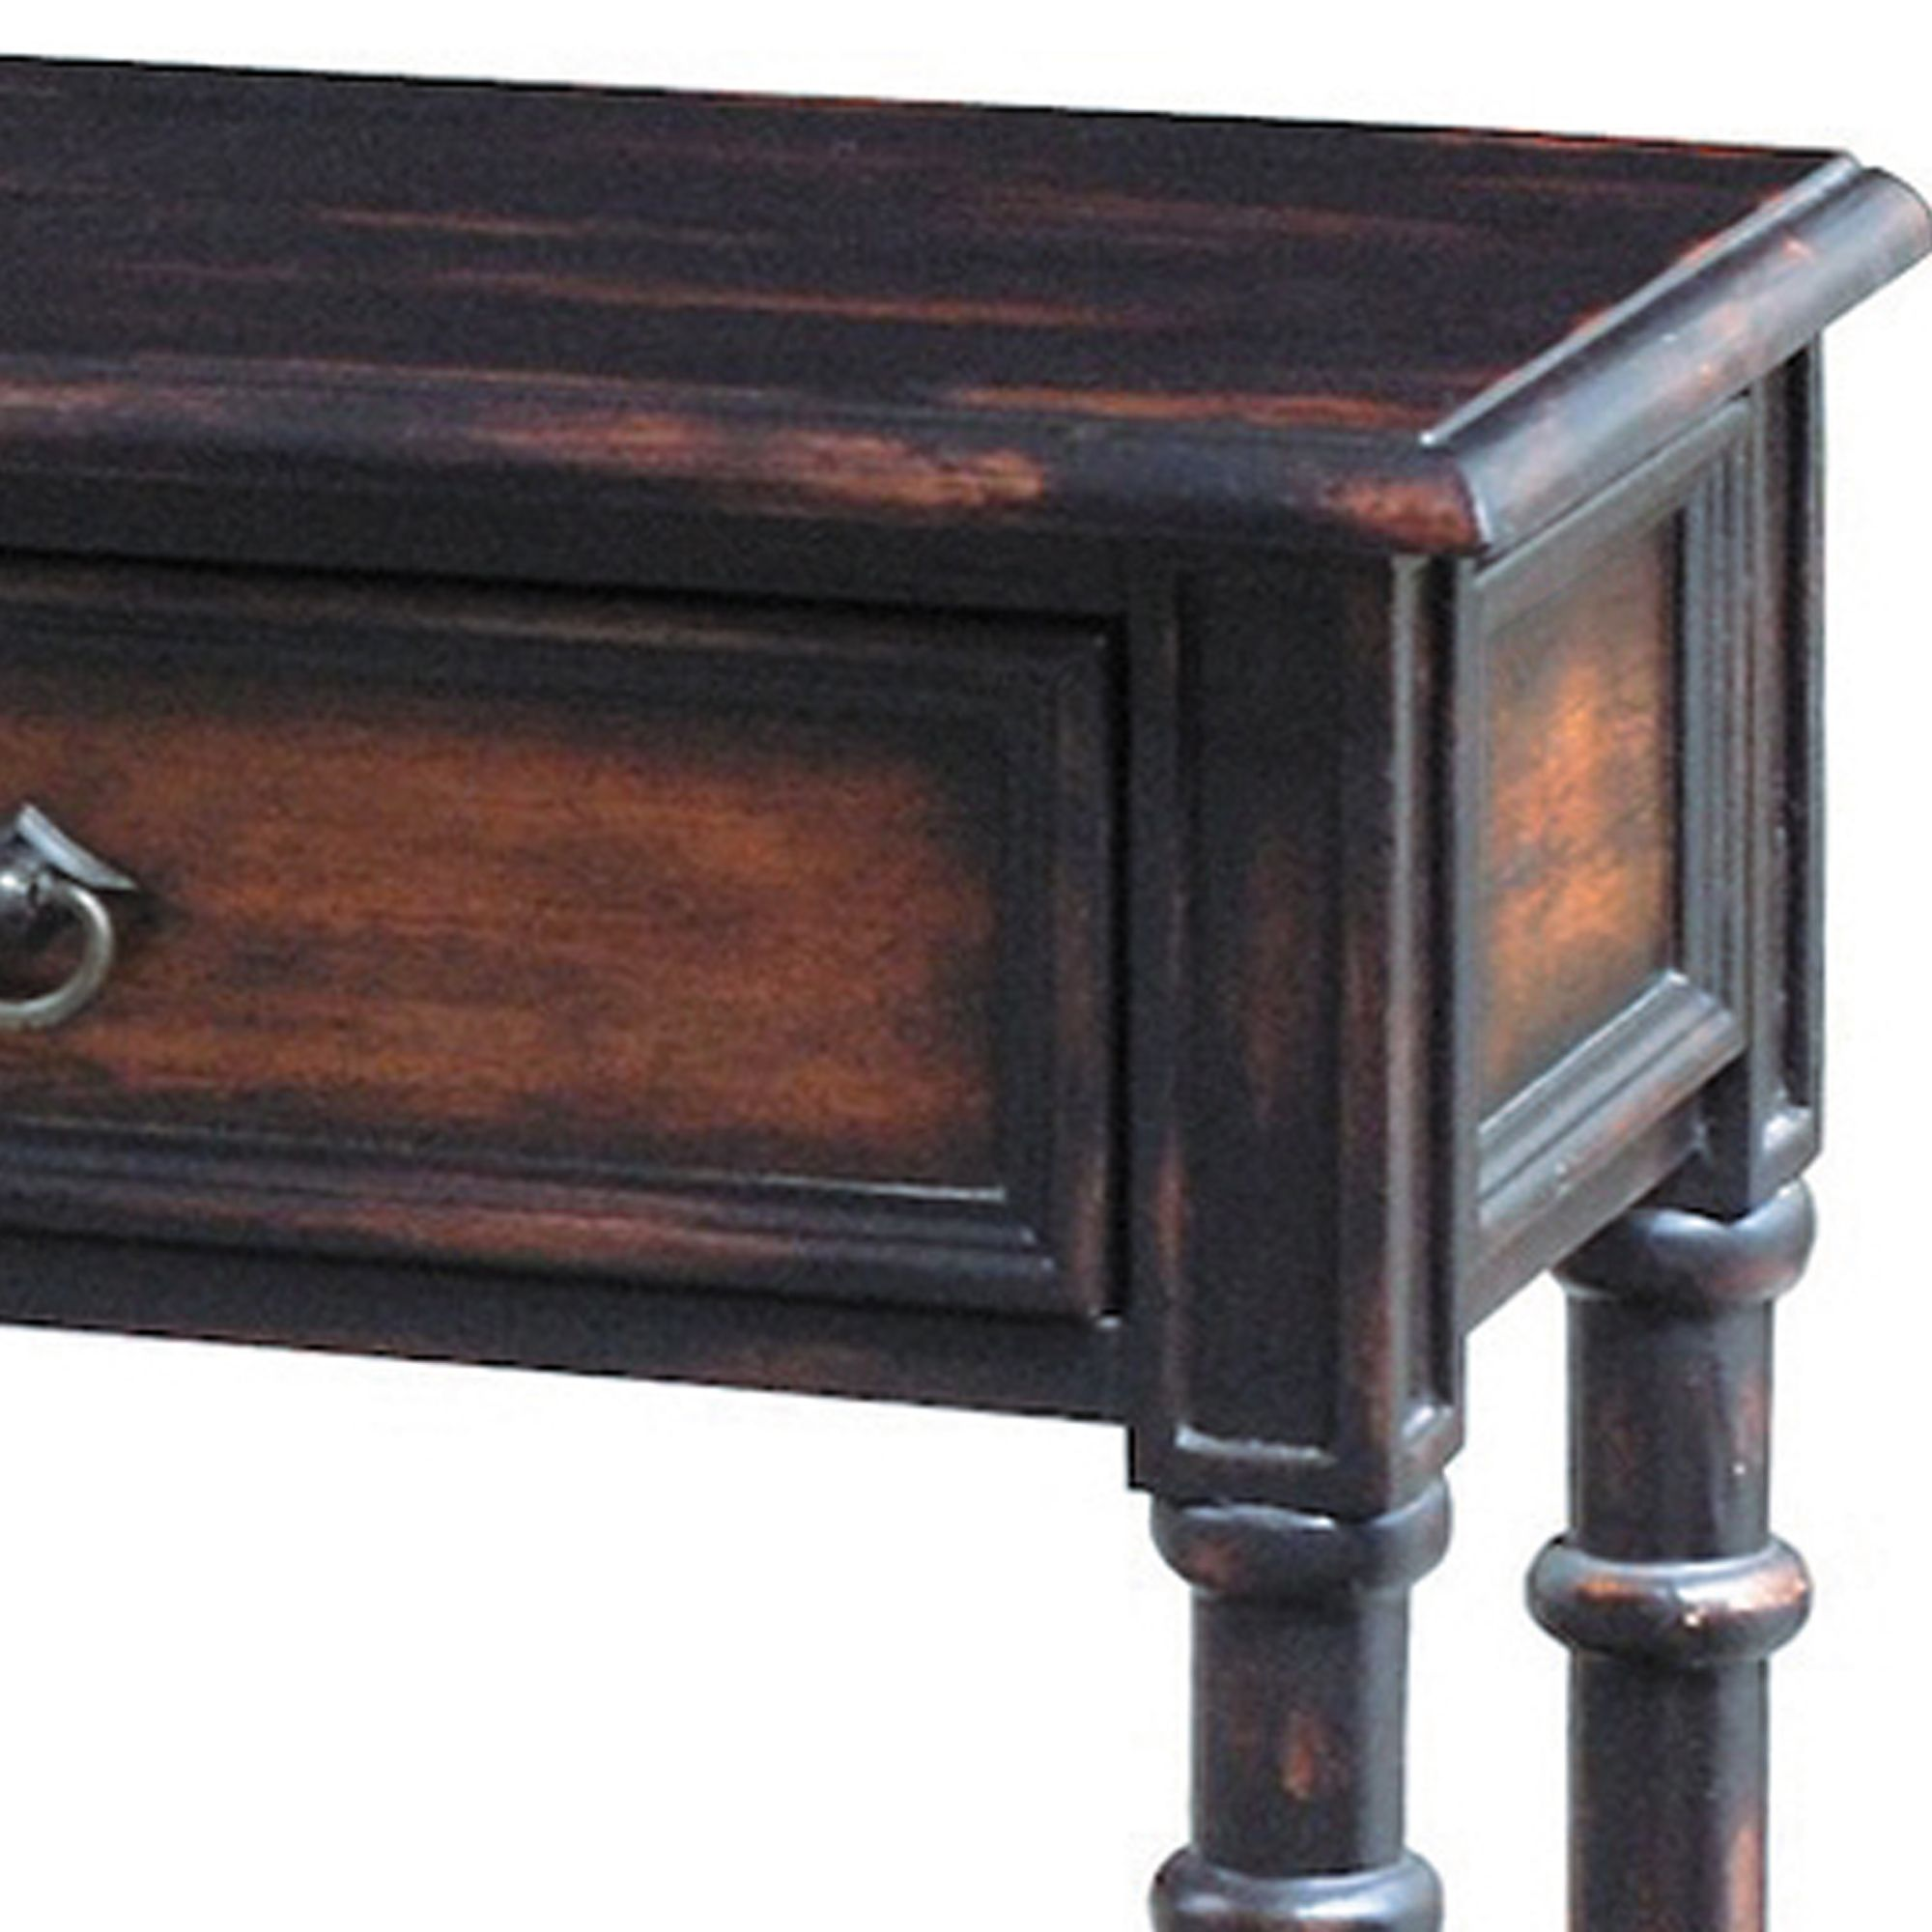 Distressed Black Bedroom Furniture hand-painted distressed black/ brown finish accent console table